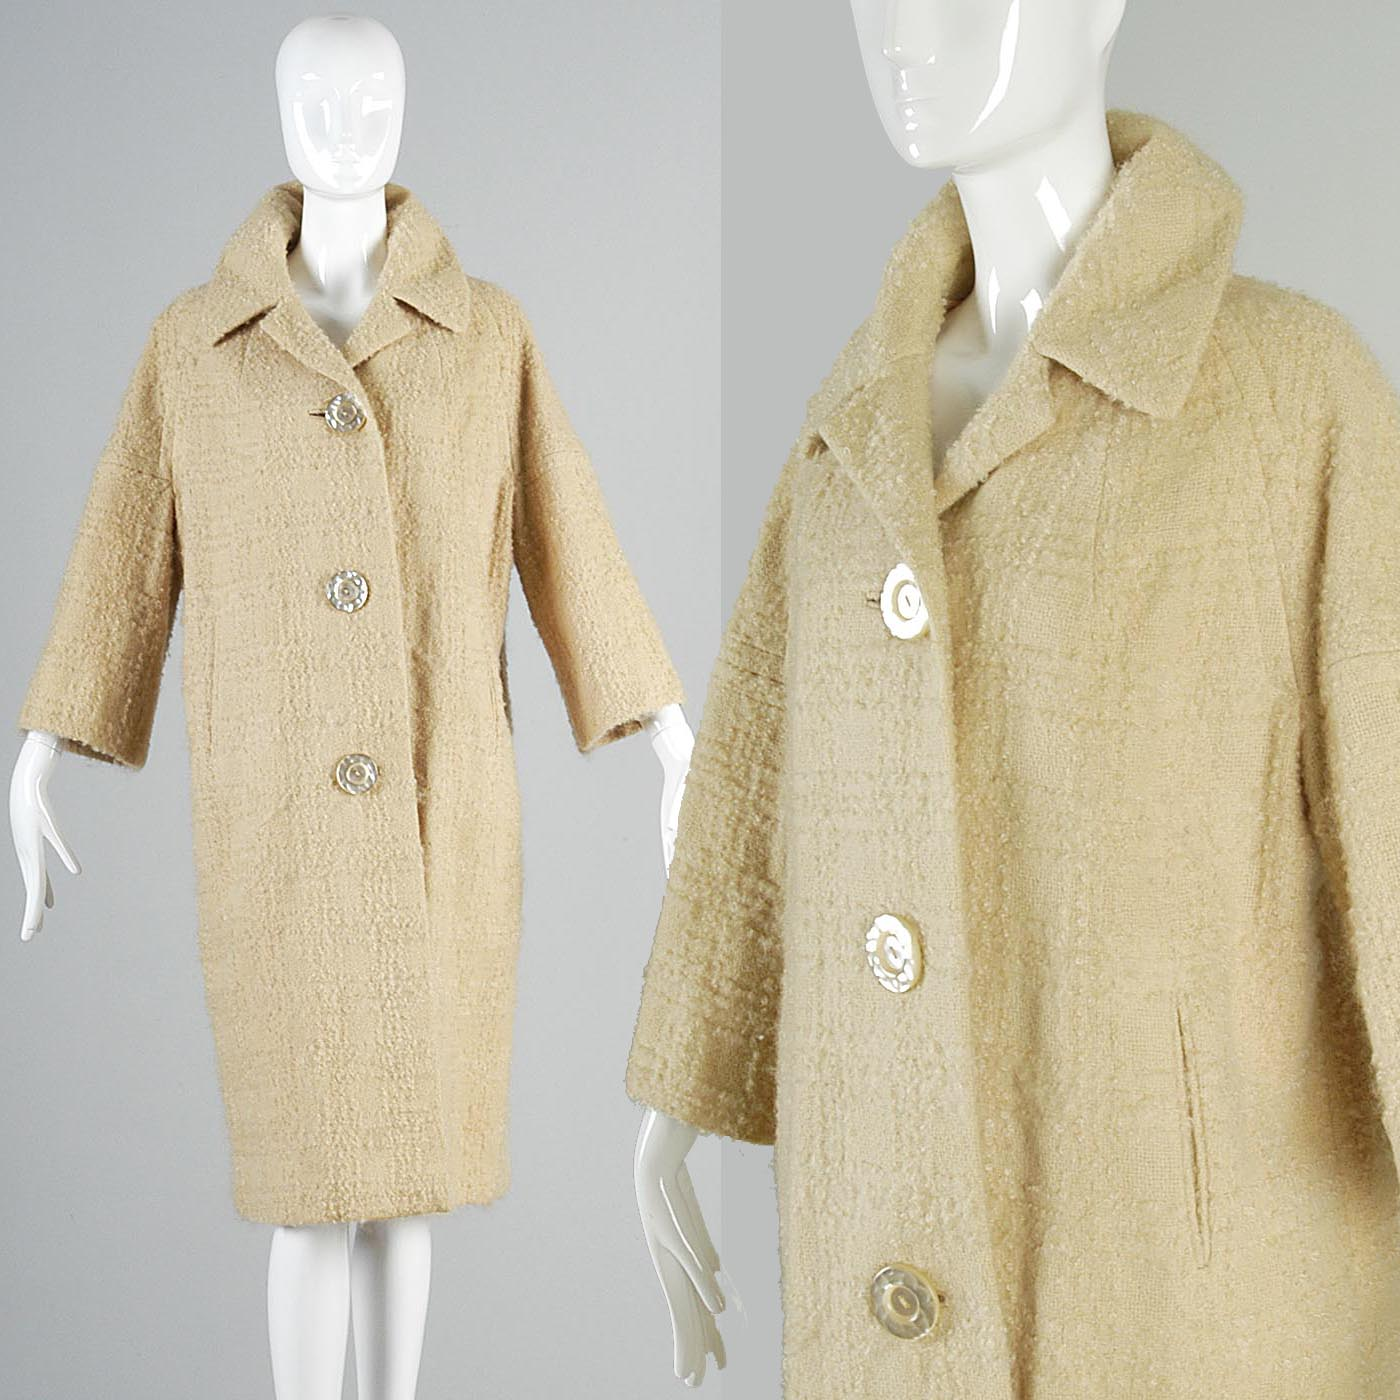 1960s Cream Boucle Tweed Car Coat